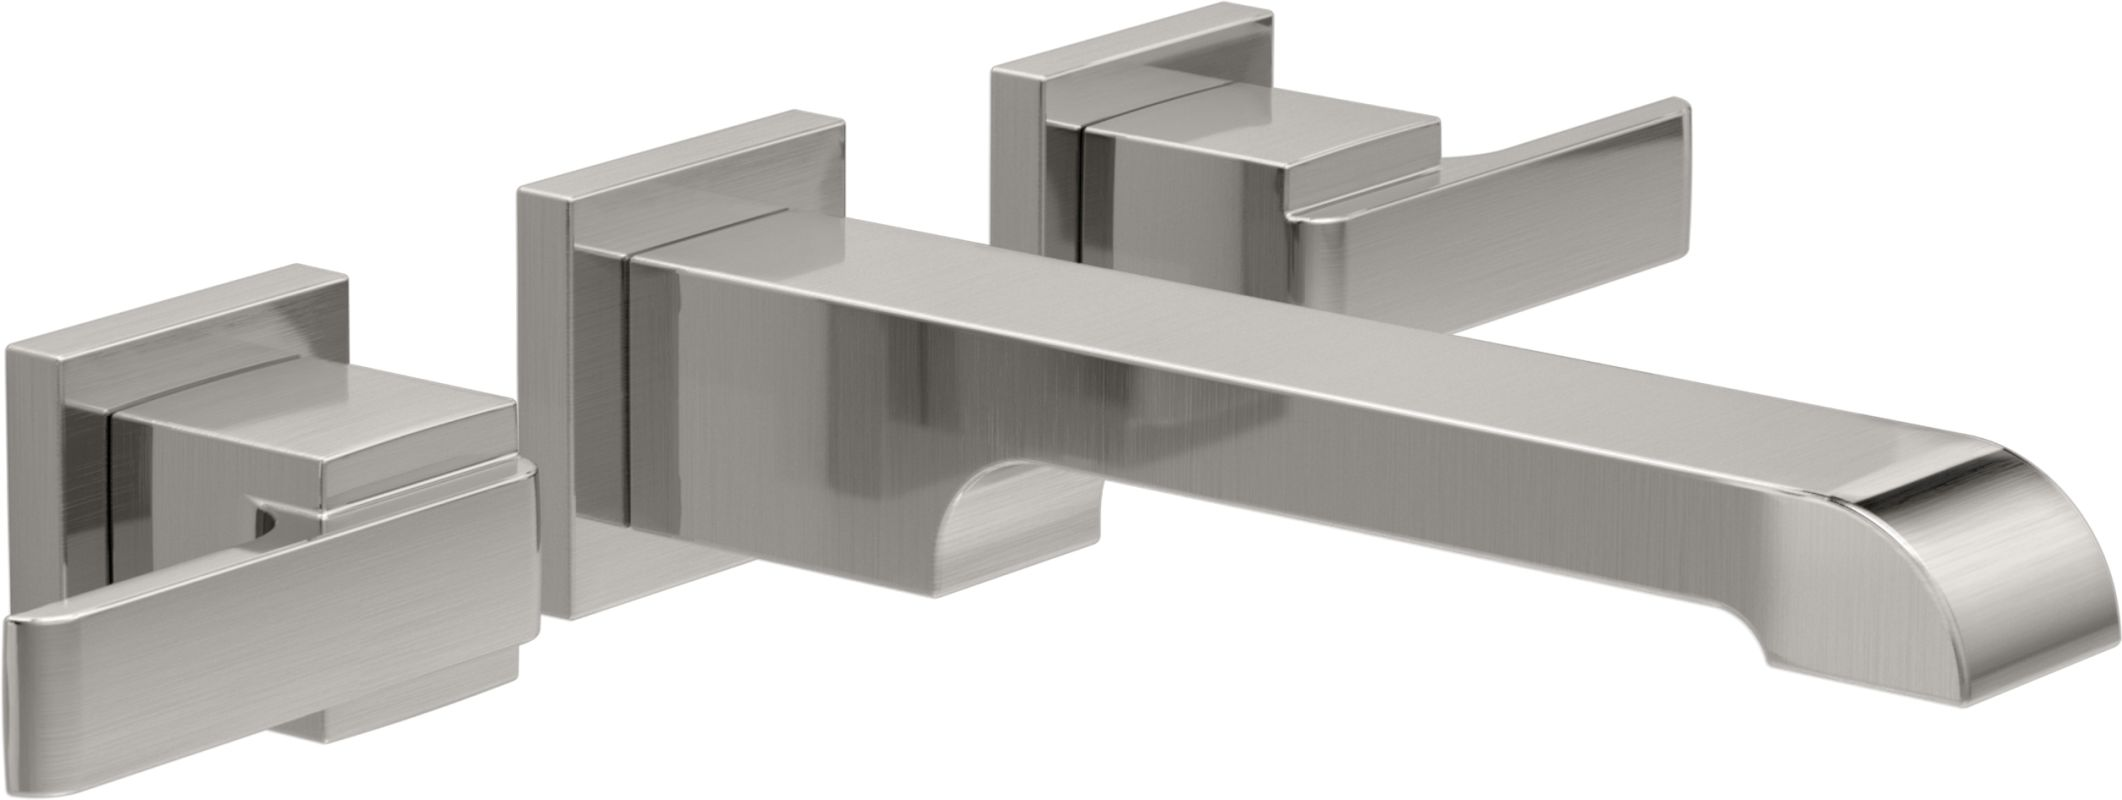 Faucet Com T3567lf Sswl In Brilliance Stainless By Delta